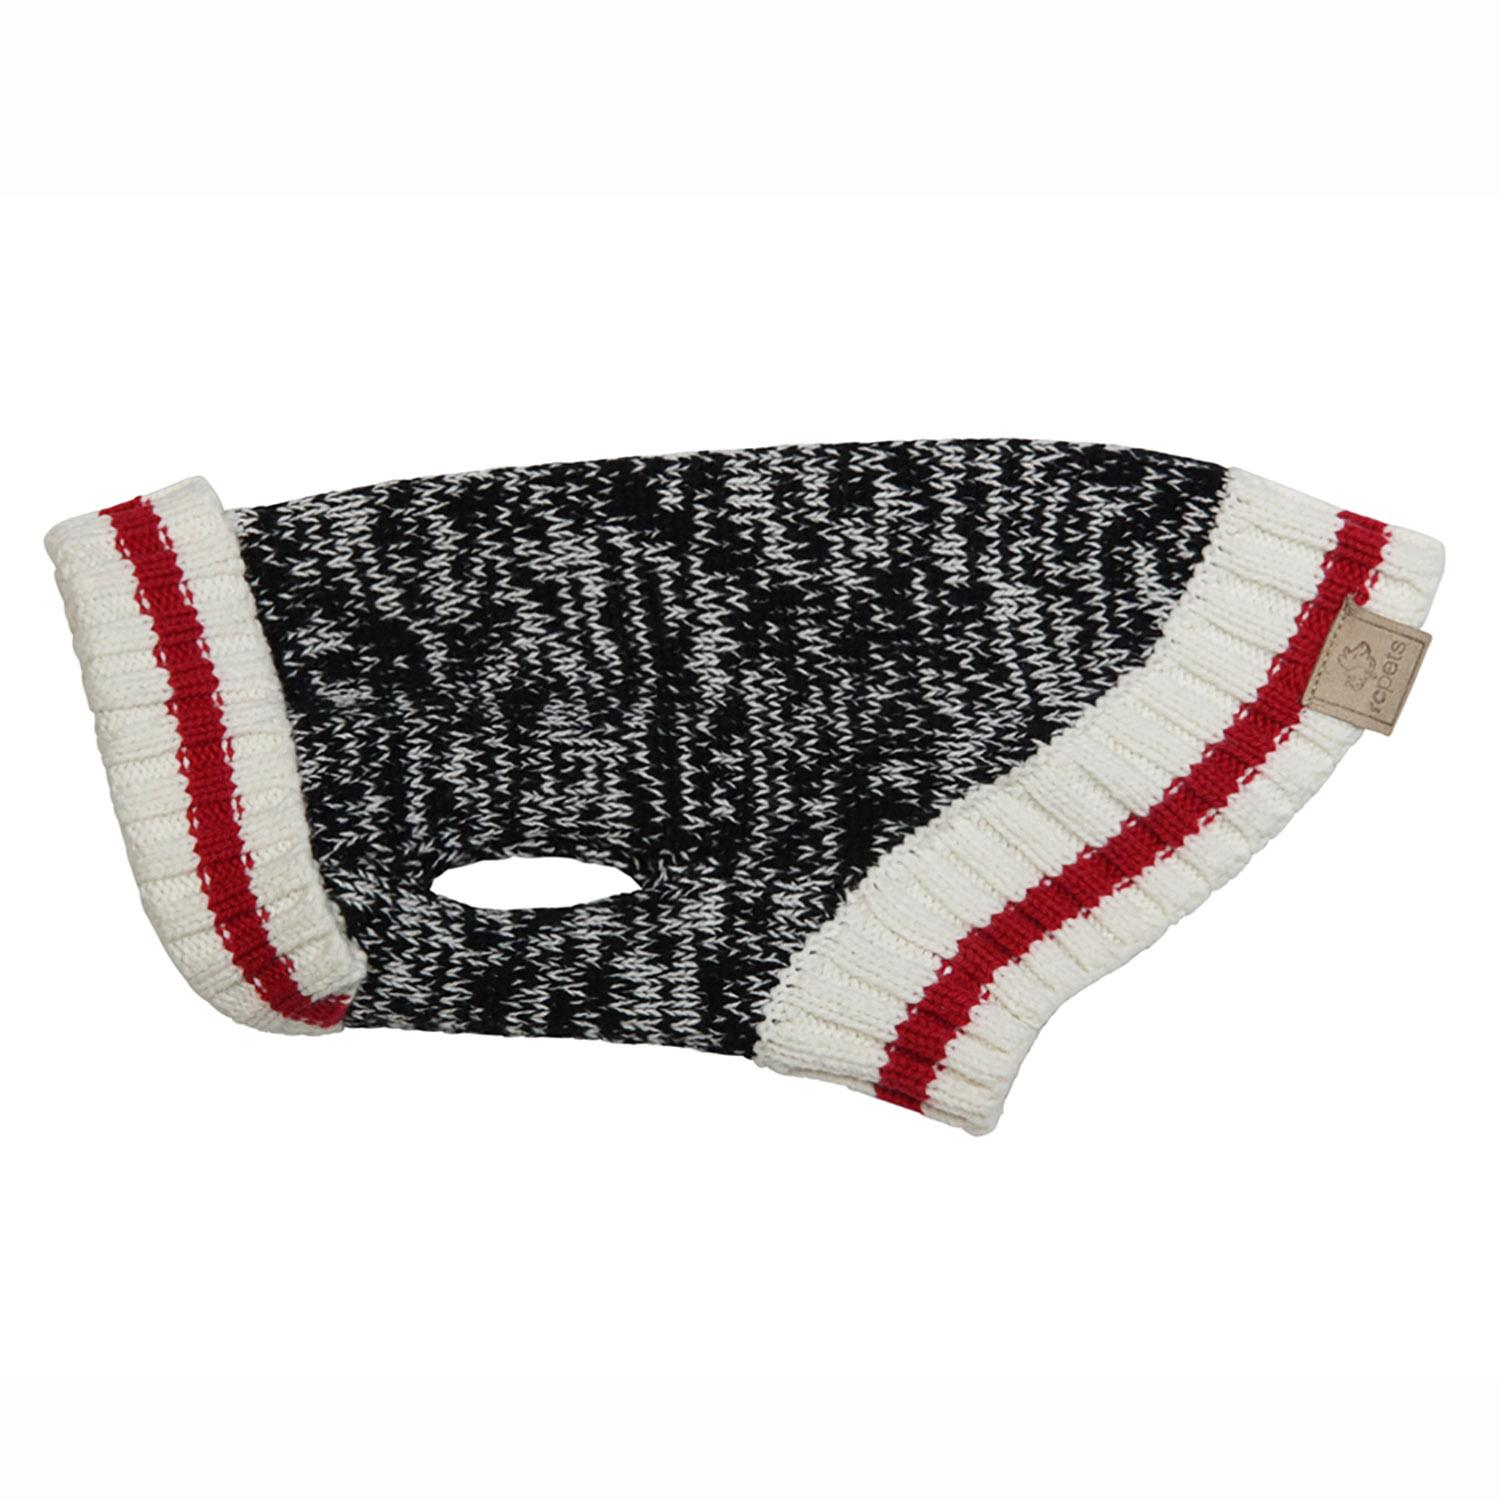 Cabin Dog Sweater by RC Pet - Black Melange